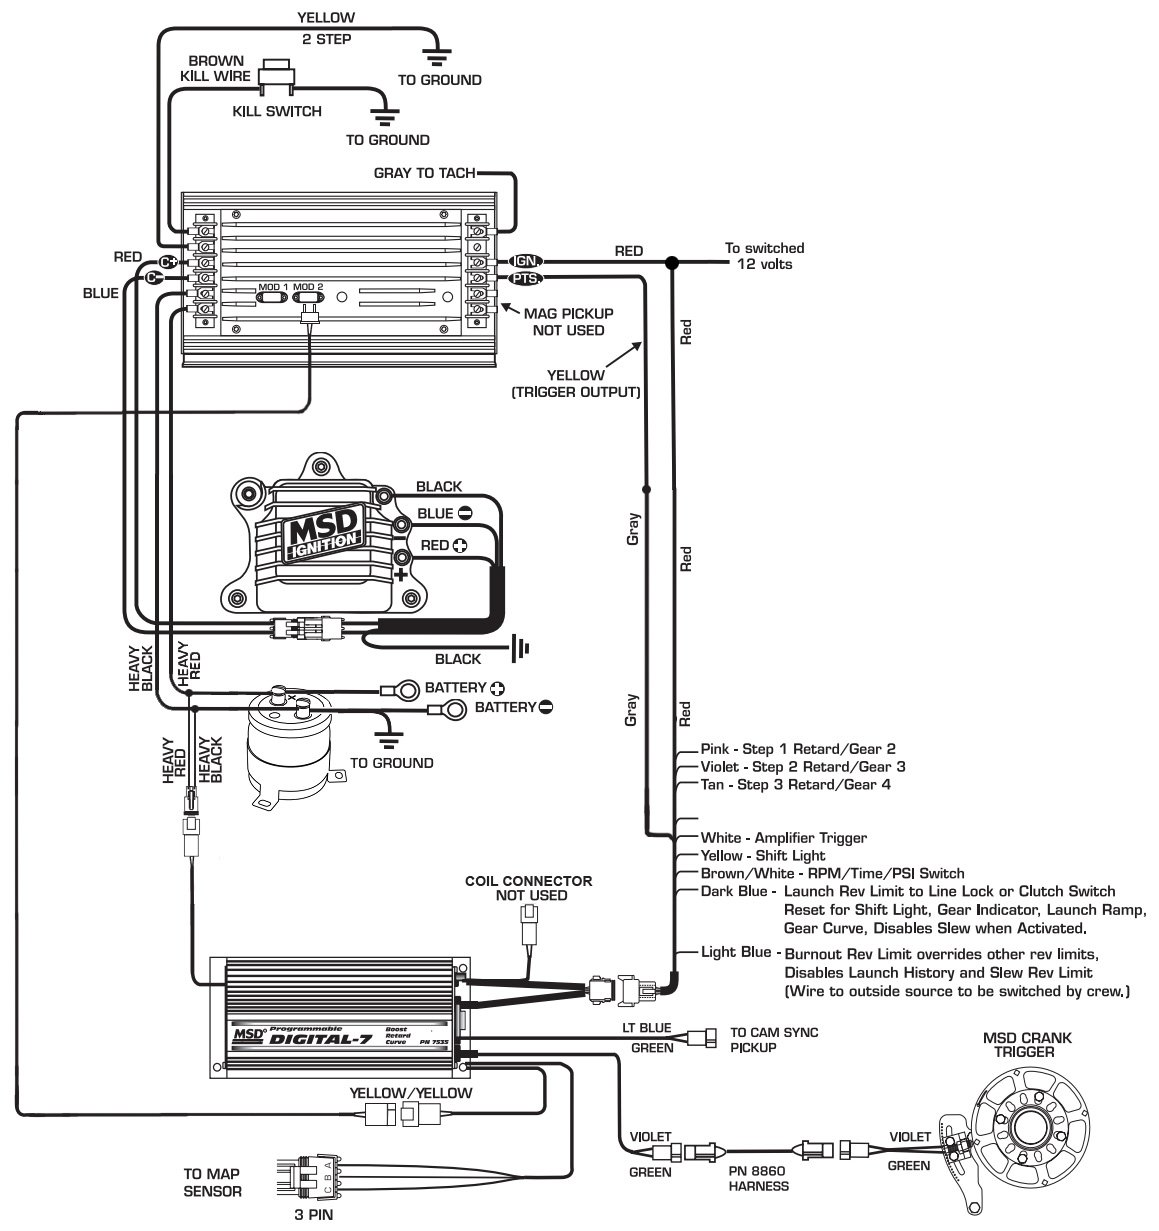 Bmw E30 M3 in addition Jet Engine Tachometer besides Ford Focus Door Finish Diagram as well Shakespeare Trolling Motor Wiring Diagram also TracDimensions. on rac wiring diagram for car